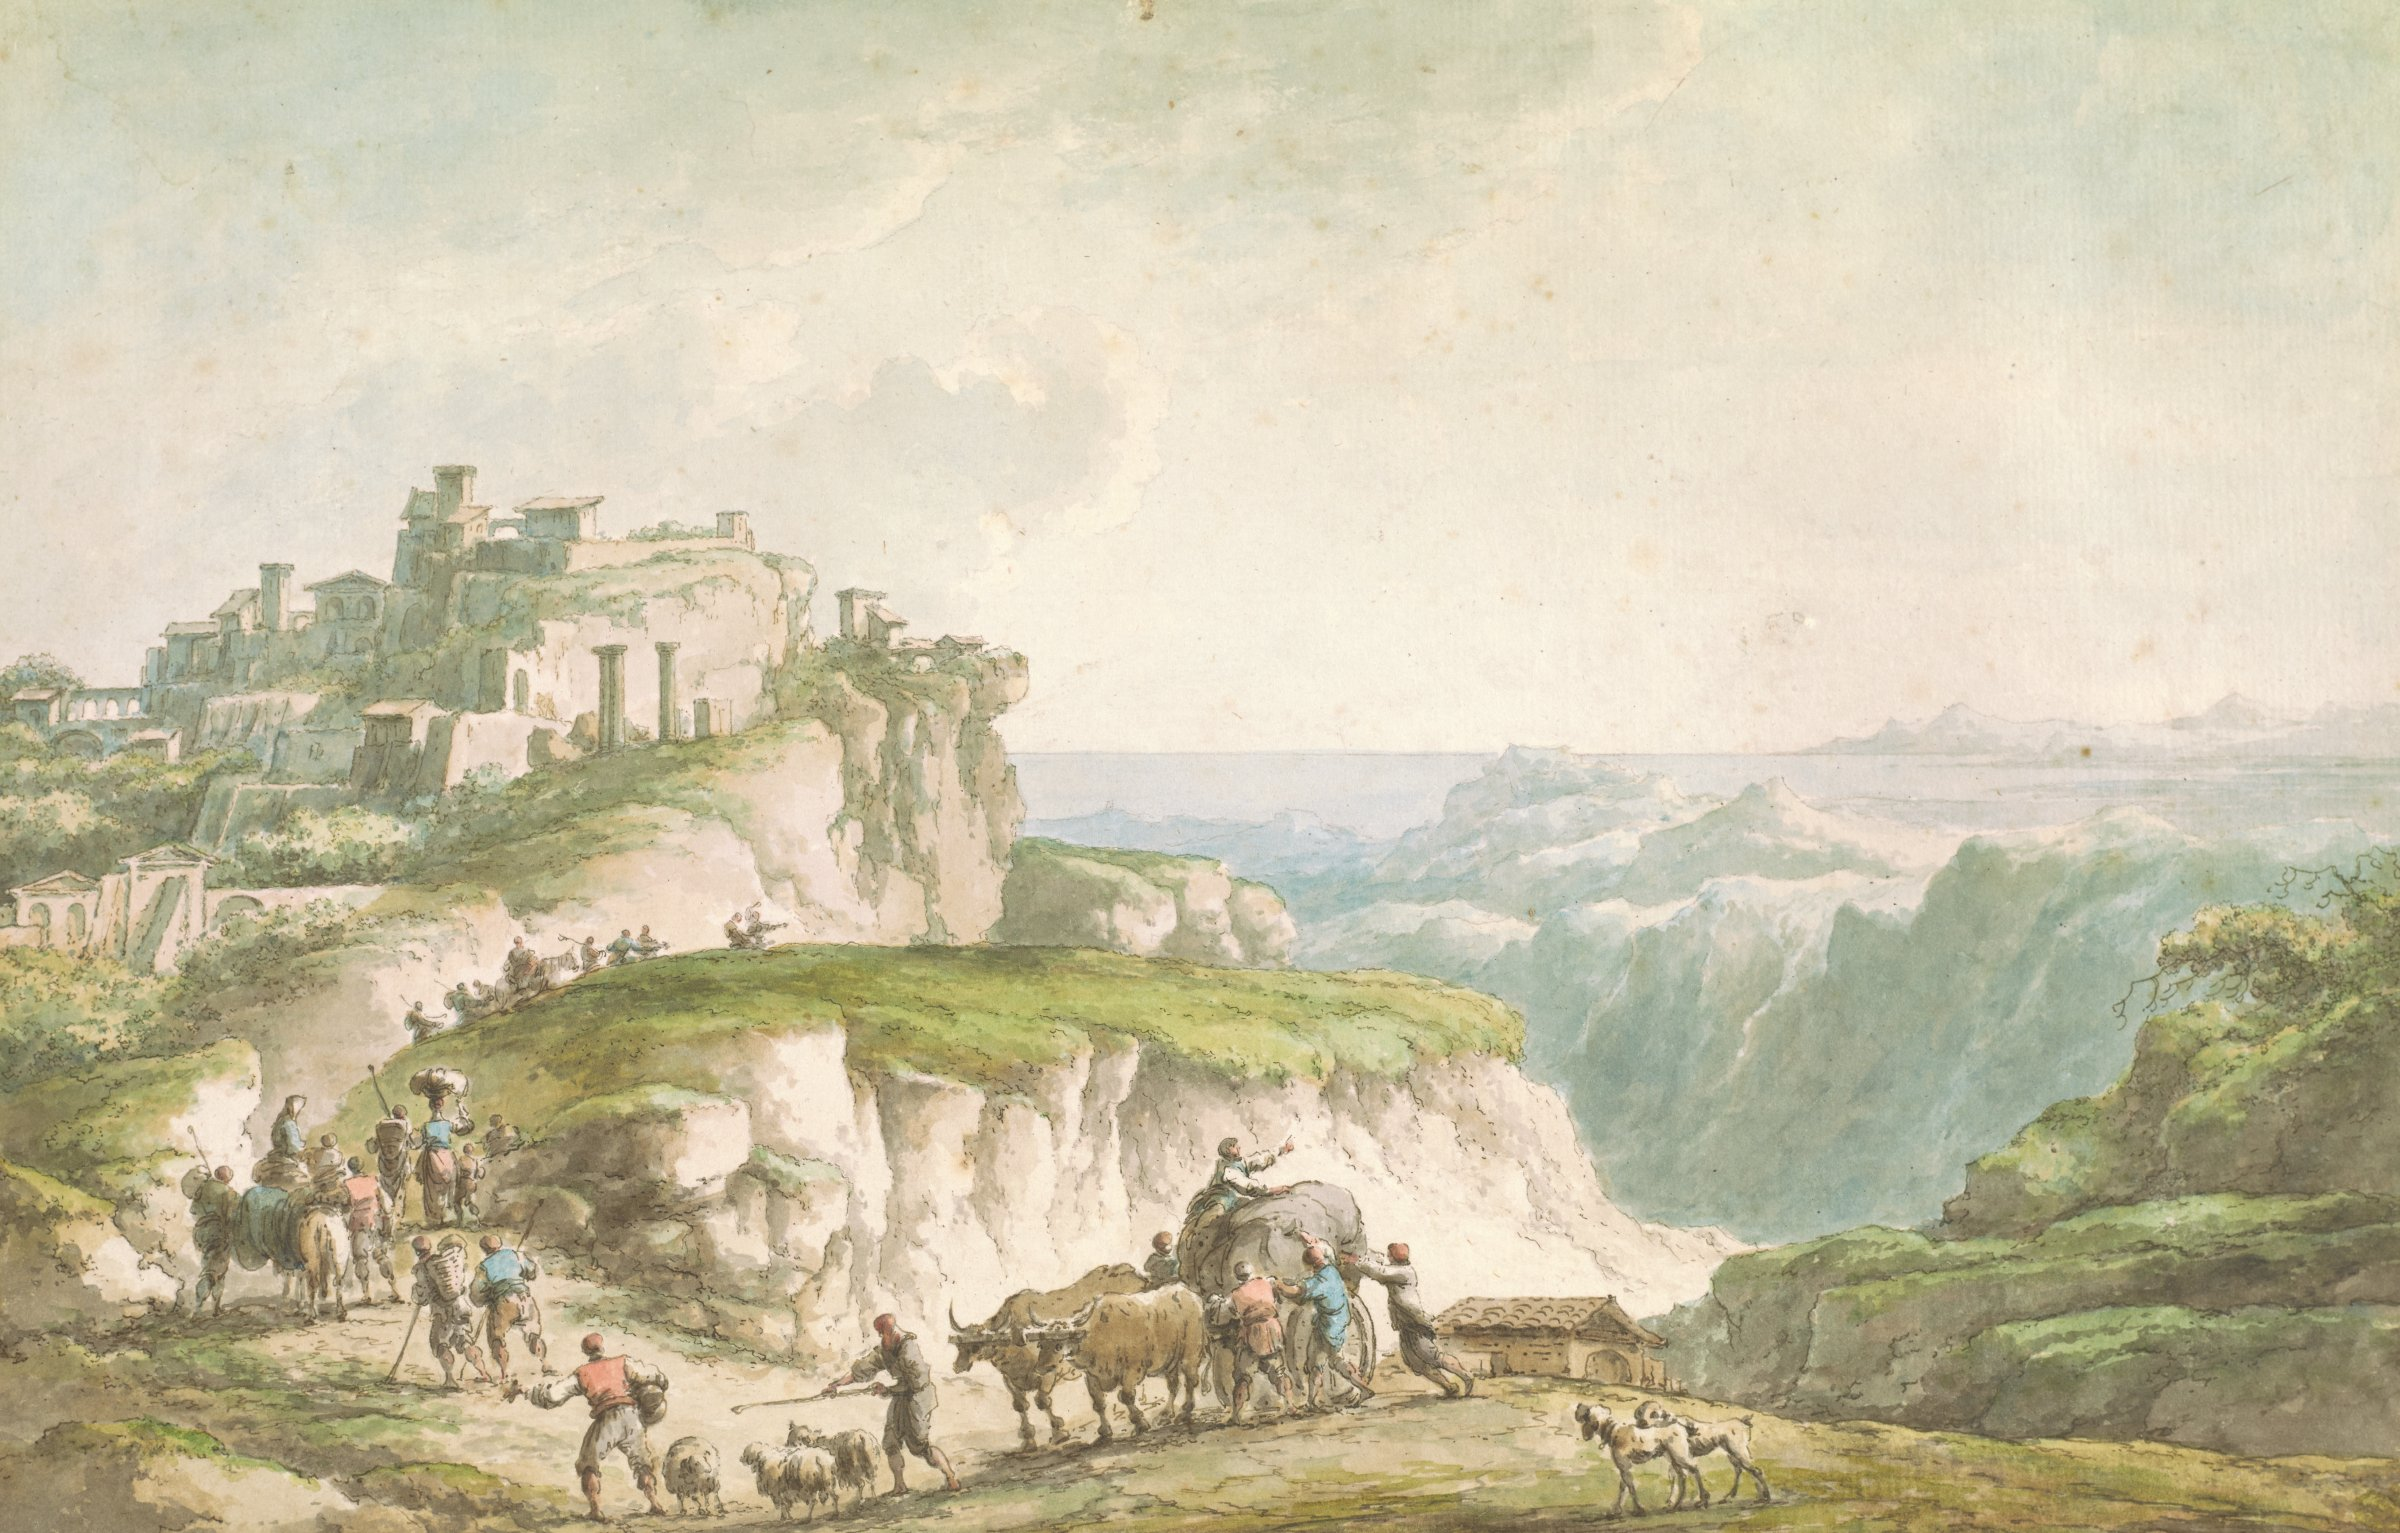 Scenic view of Catanzaro showing picturesque ruins and rocky cliffs. A procession of farmers and livestock travel up the cliffside.